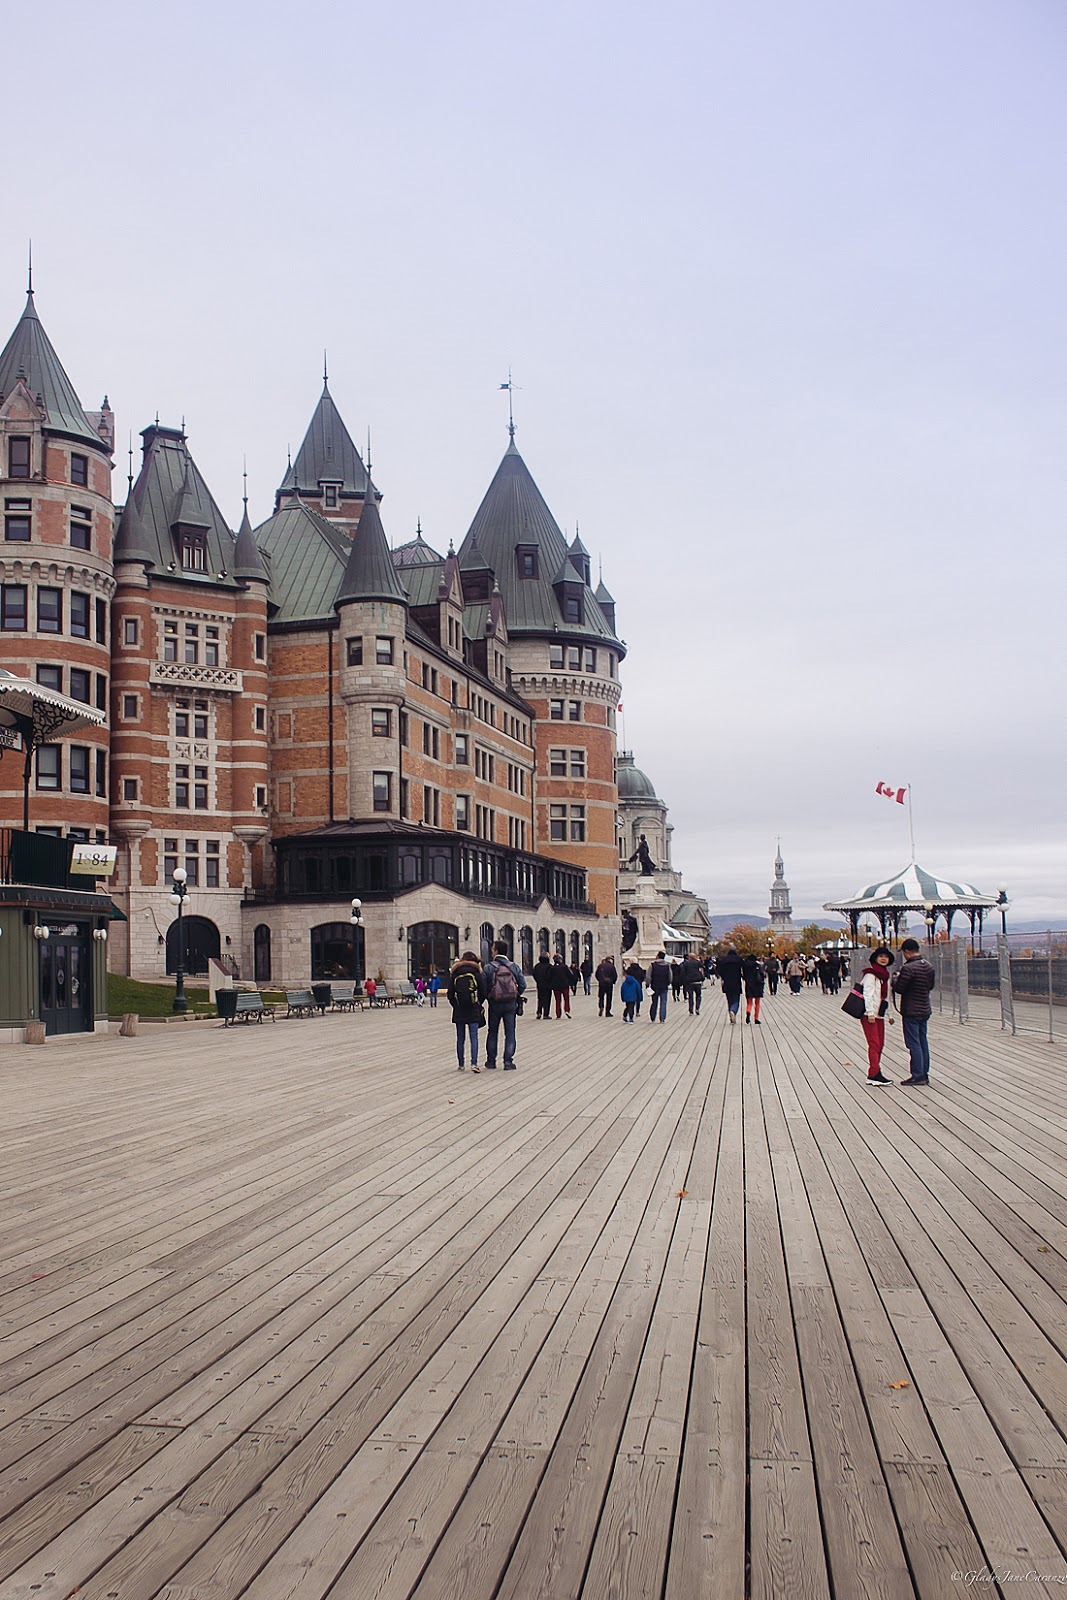 Fairmont Le Château Frontenac: Things To Do in Quebec, Canada